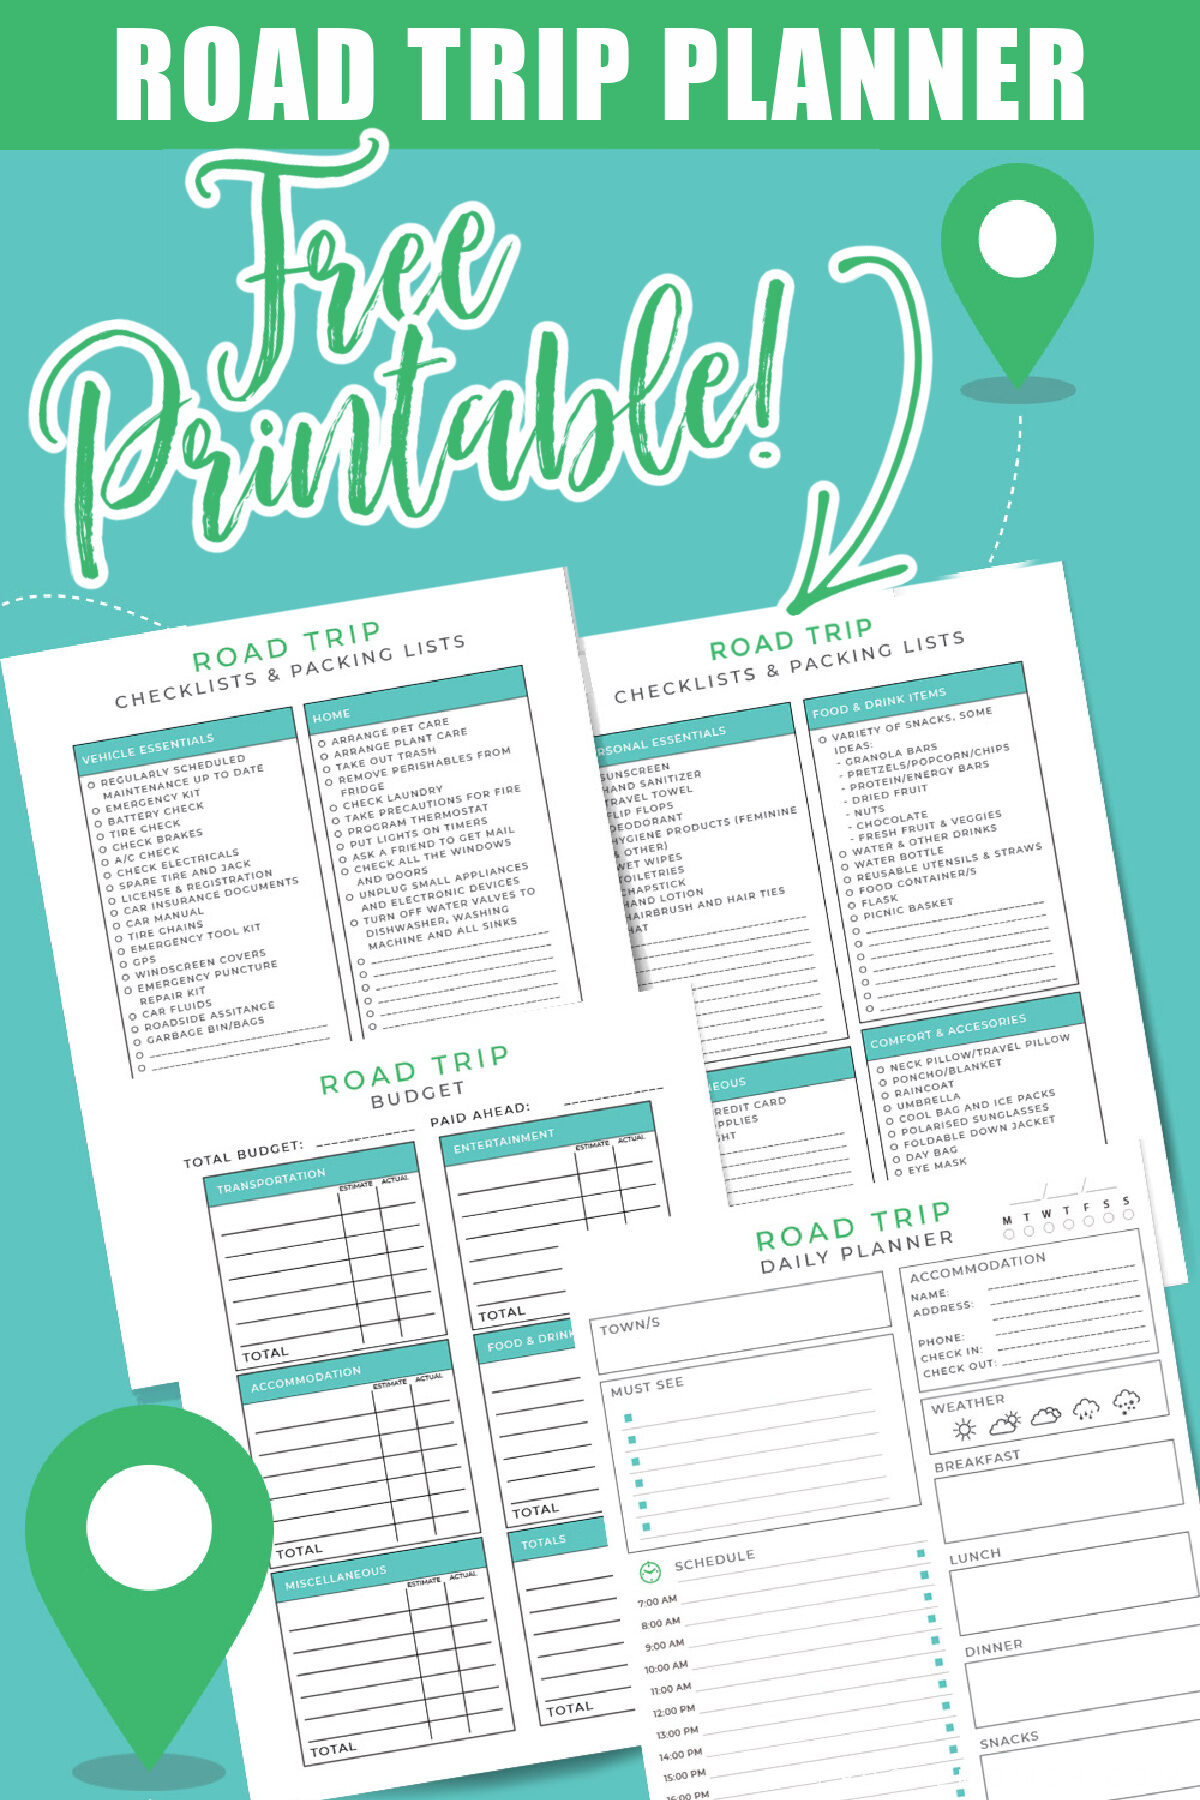 This free printable road trip planner will help you get organized. Keep track of your itinerary, packing lists, budget, and more.